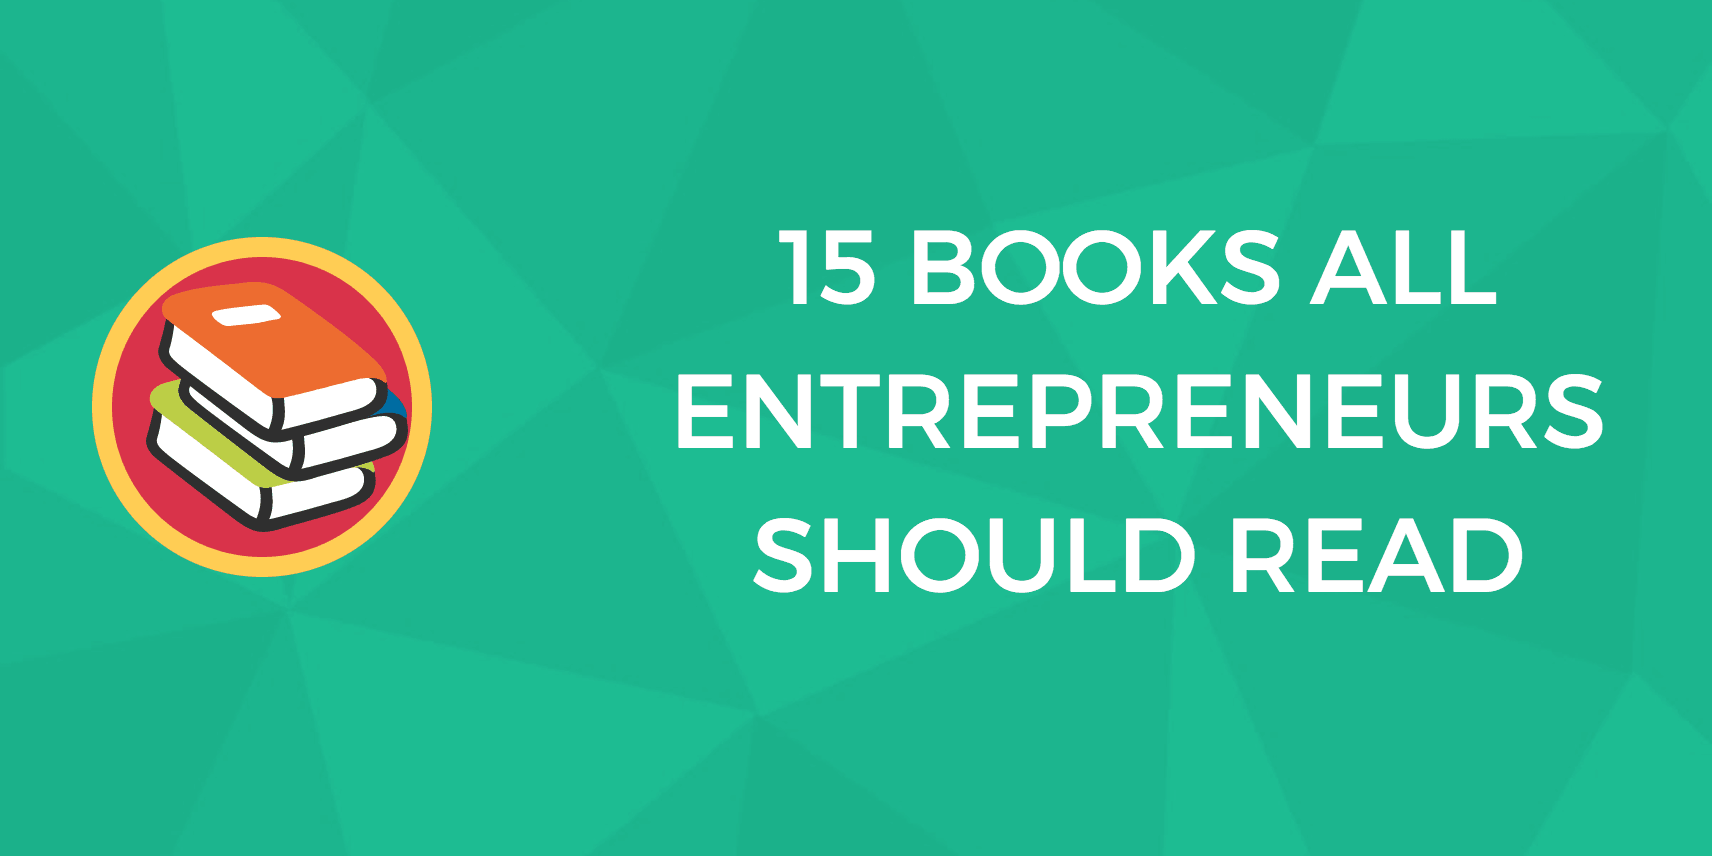 15 books all entrepreneurs should read